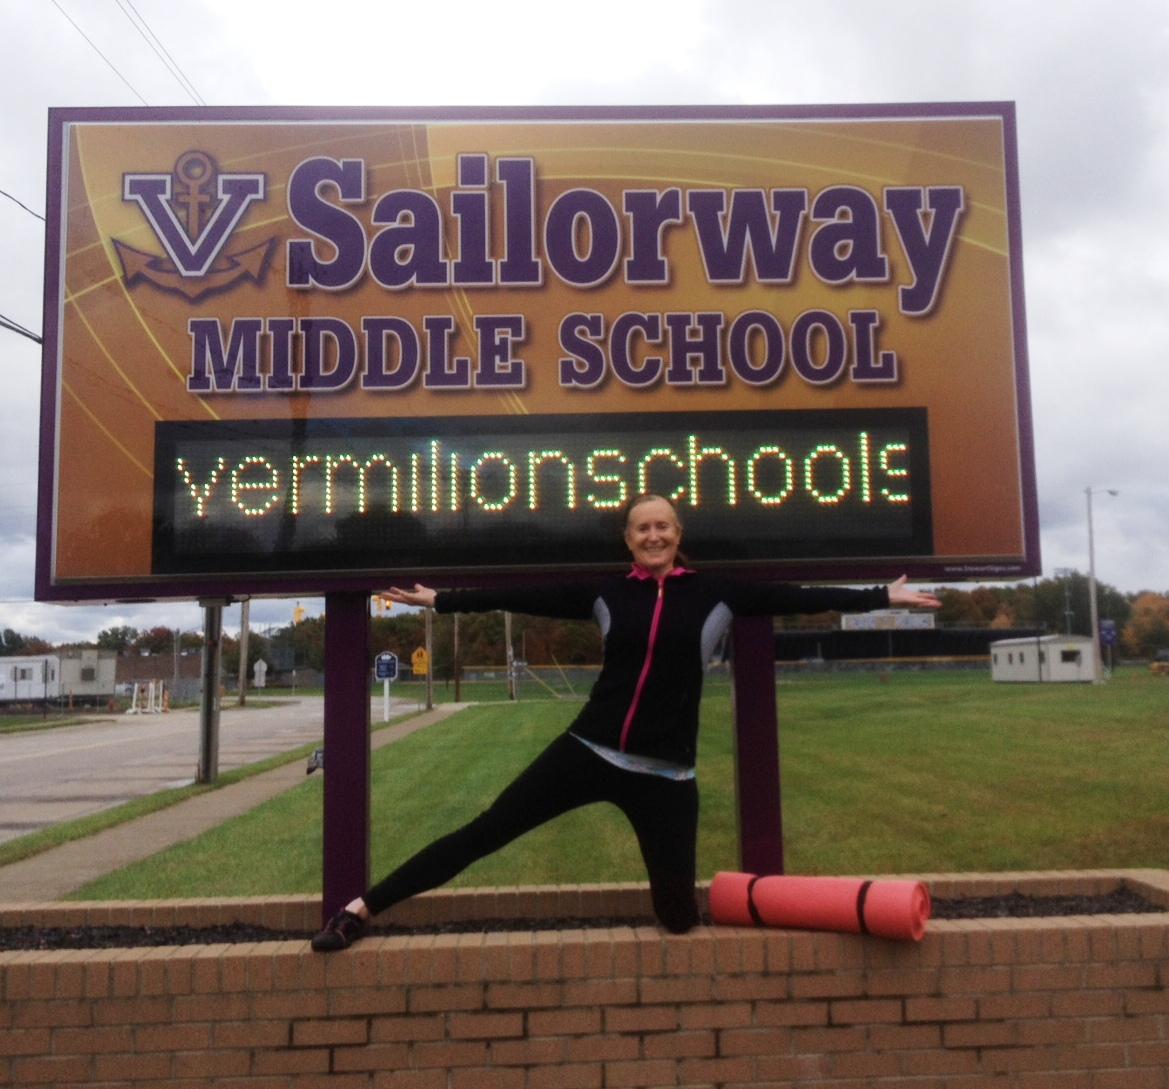 Sailor Way Middle School